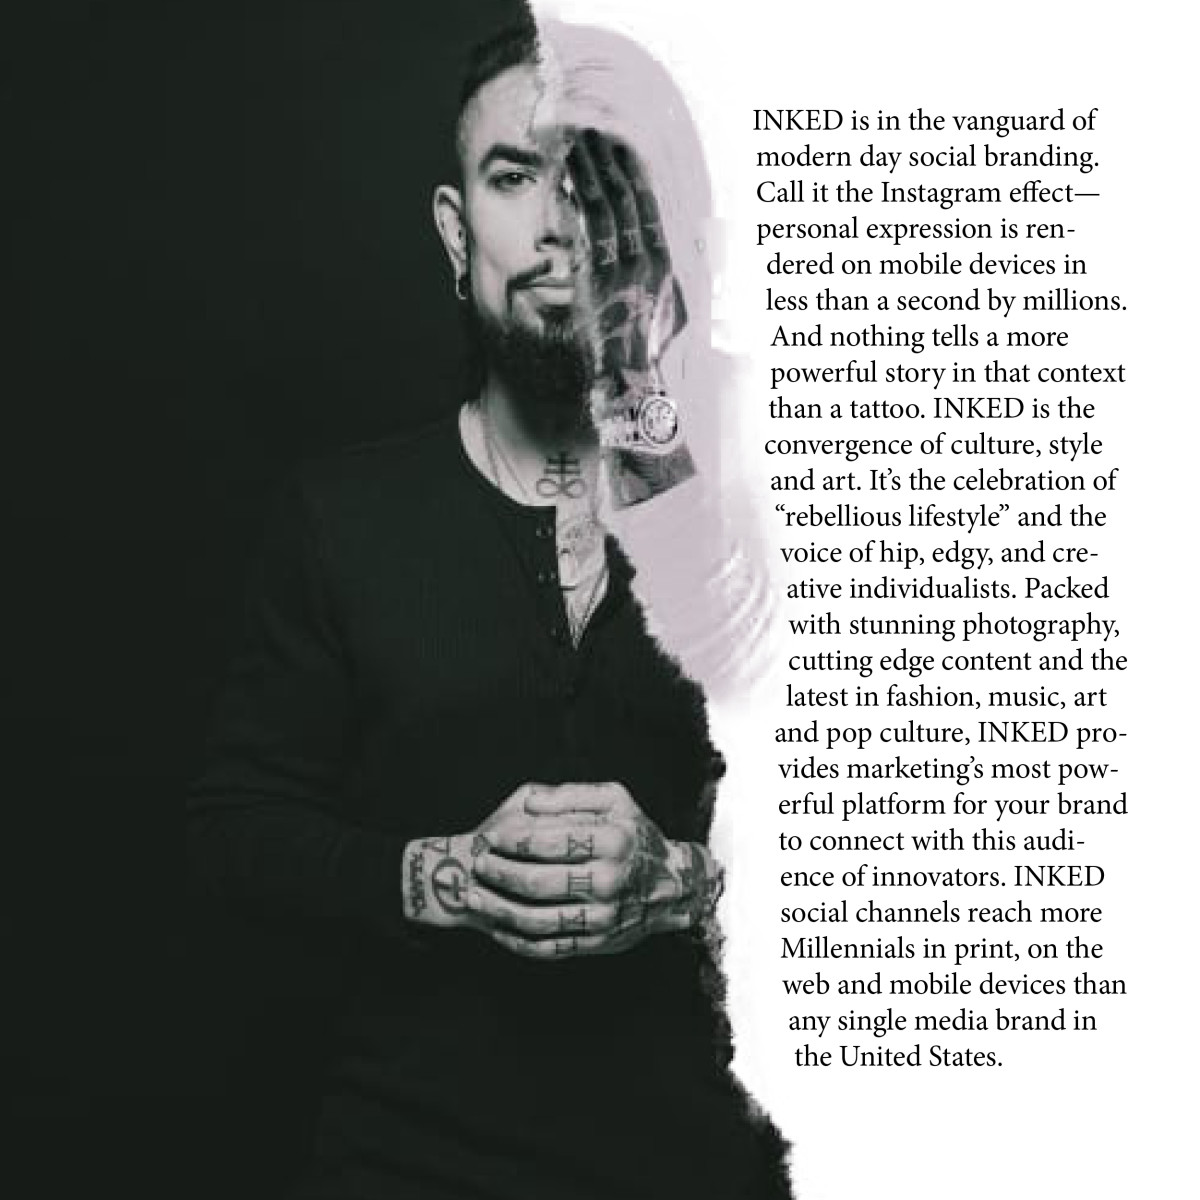 Dave Navarro from the Inked for a Cause issue.